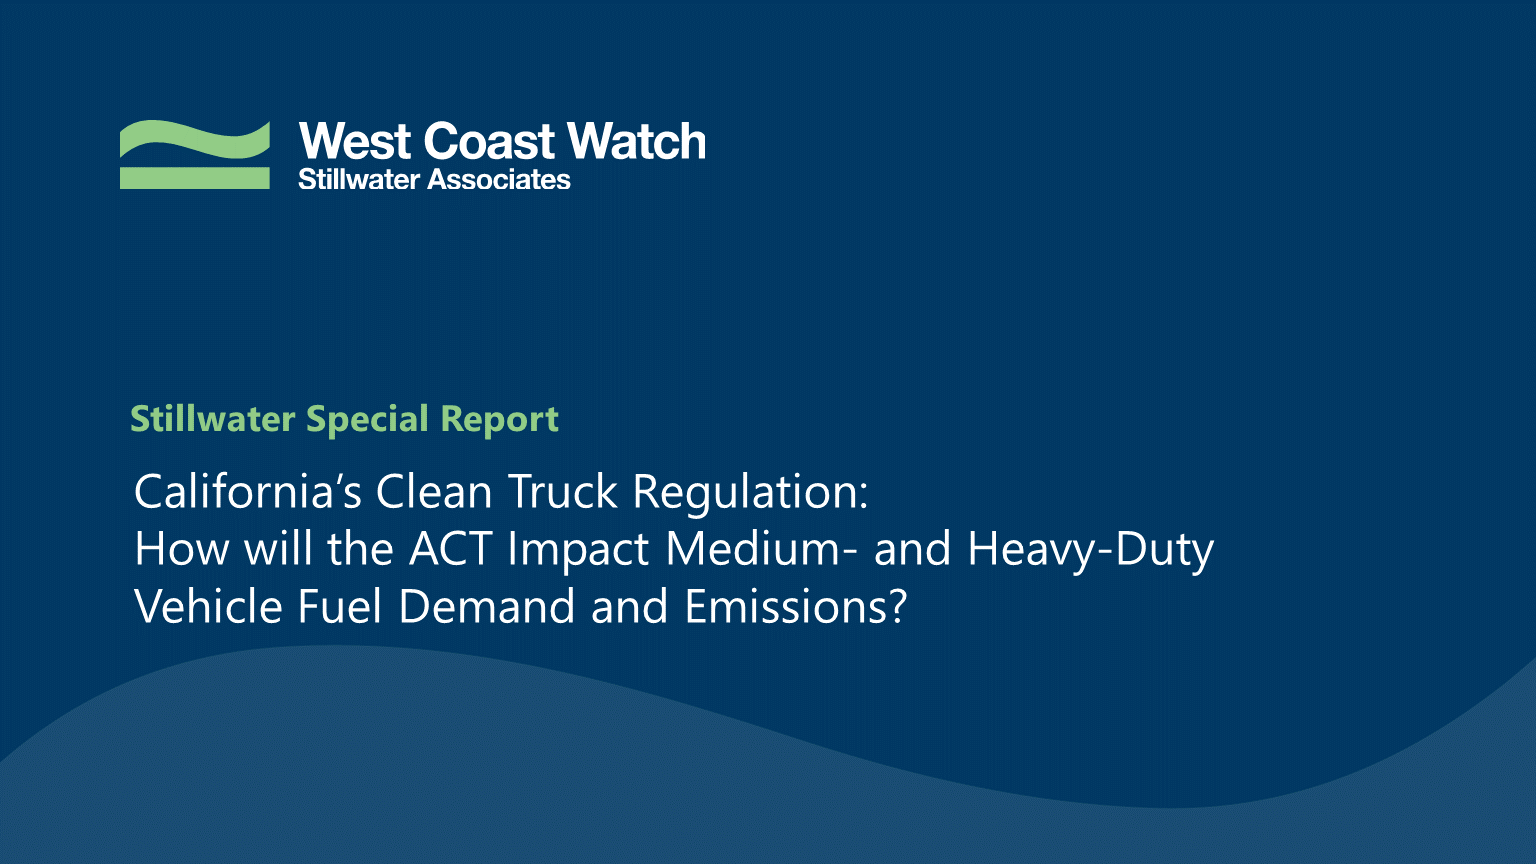 Stillwater Special Report Cover: California's ACT Regulation and the impact on medium- and heavy-duty vehicle fuel demand and emissions